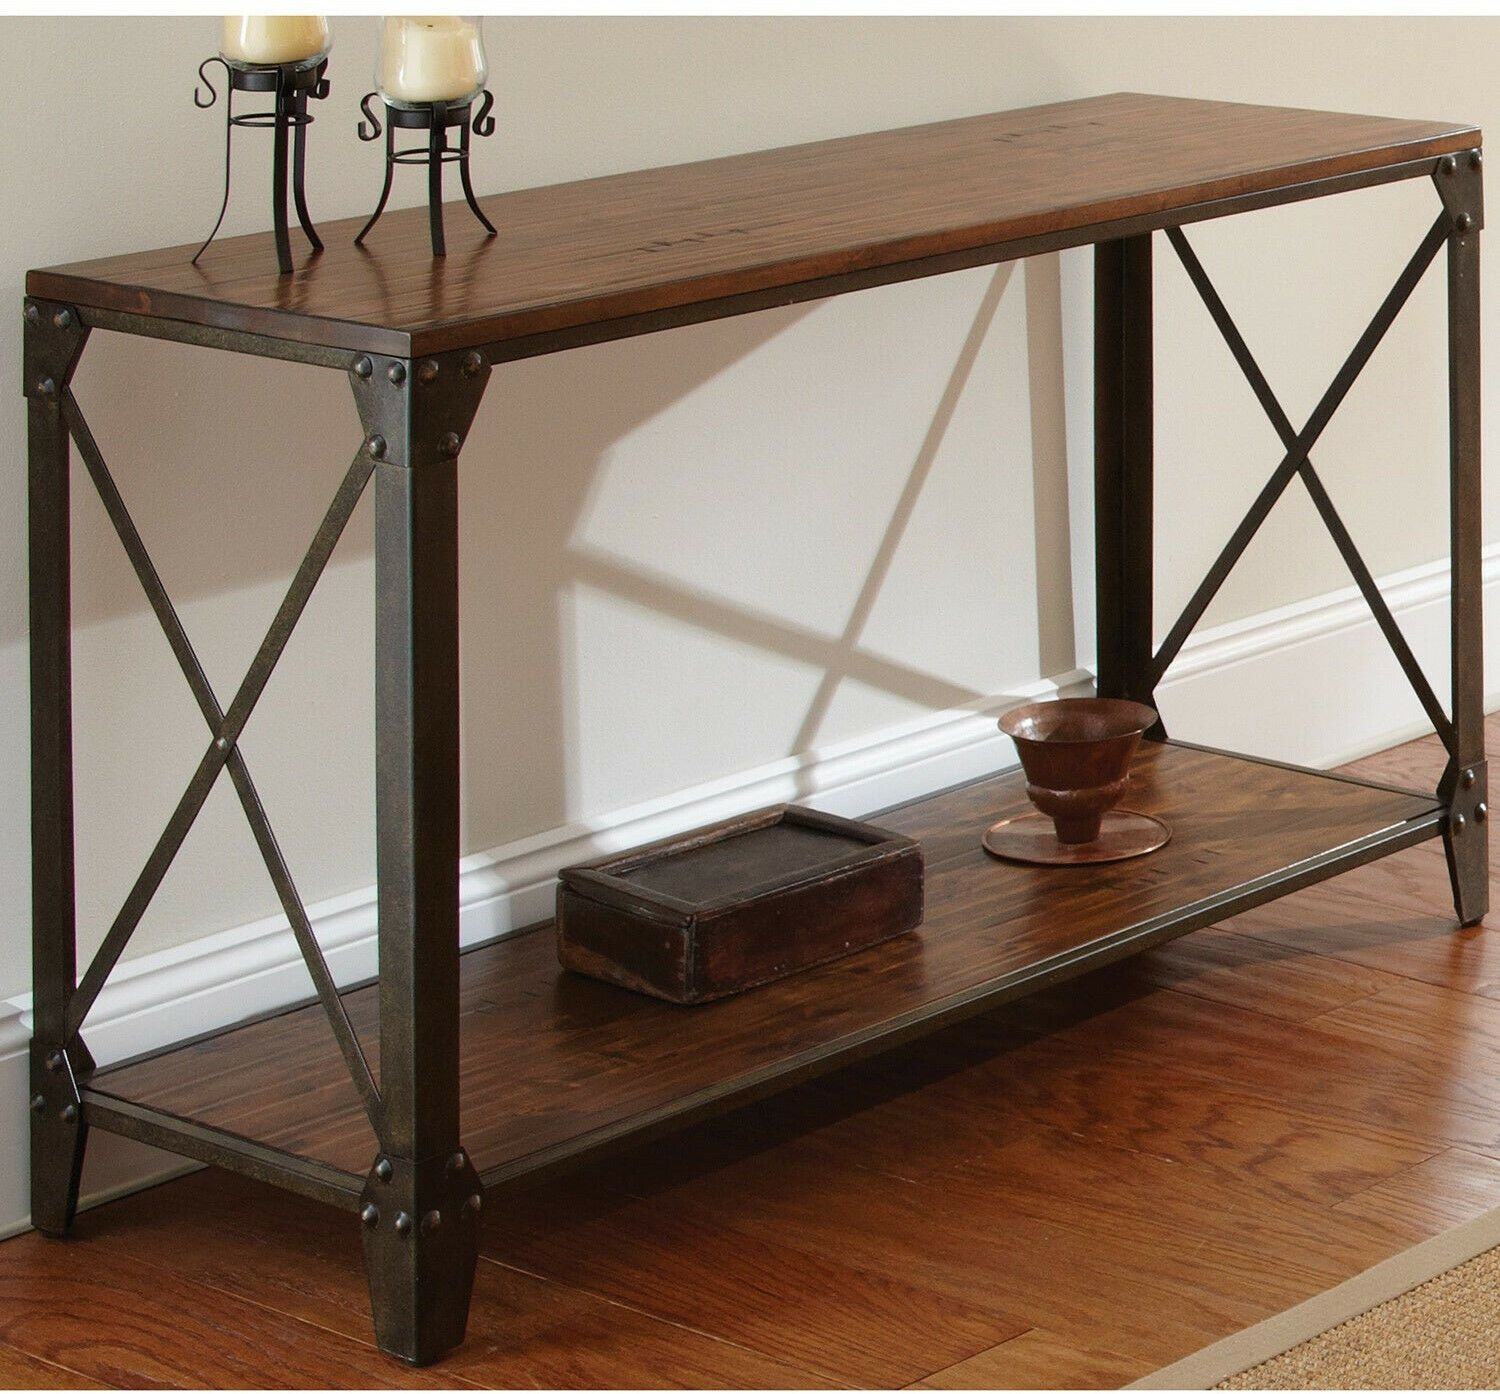 Wood And Iron Rustic Sofa Table Vintage Wood And Metal Console Table Entryway Sofa Table Ideas Of Sofa Table Rustic Sofa Tables Rustic Sofa Wood Sofa Table